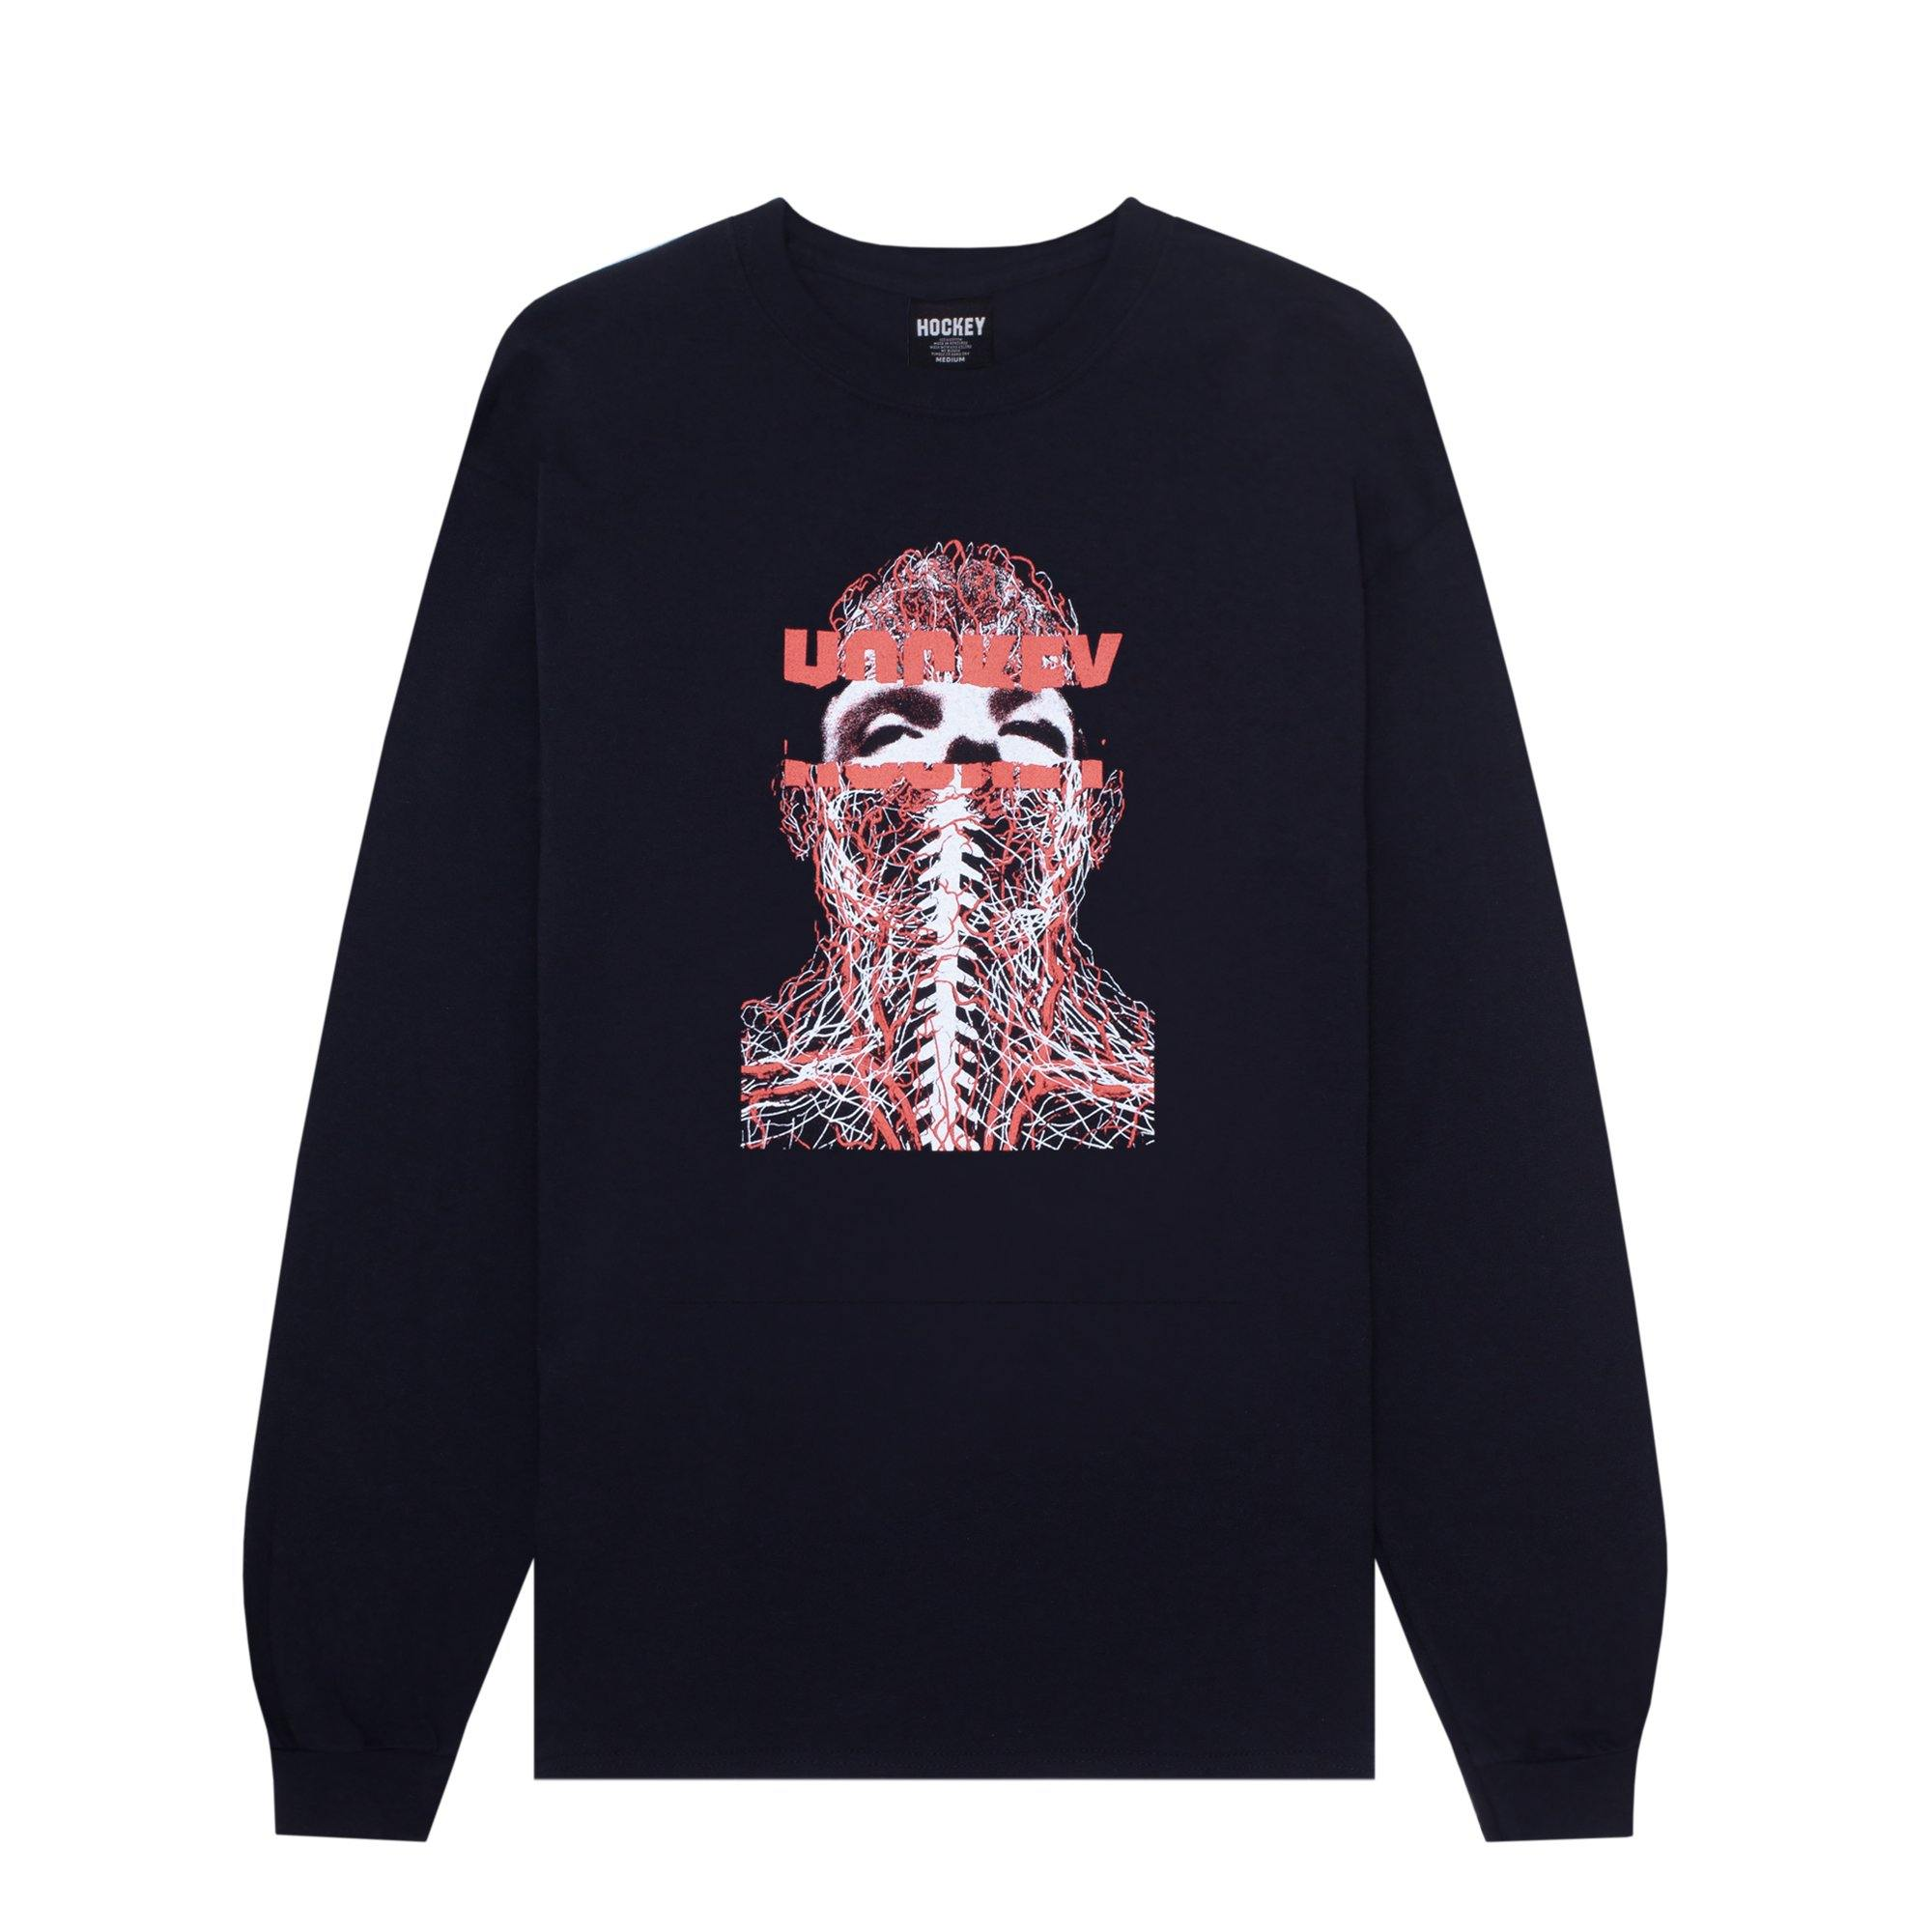 Teeshirt Manches Longues HOCKEY Nerves L/S Black - Noir - SUBIACO SKATESHOP